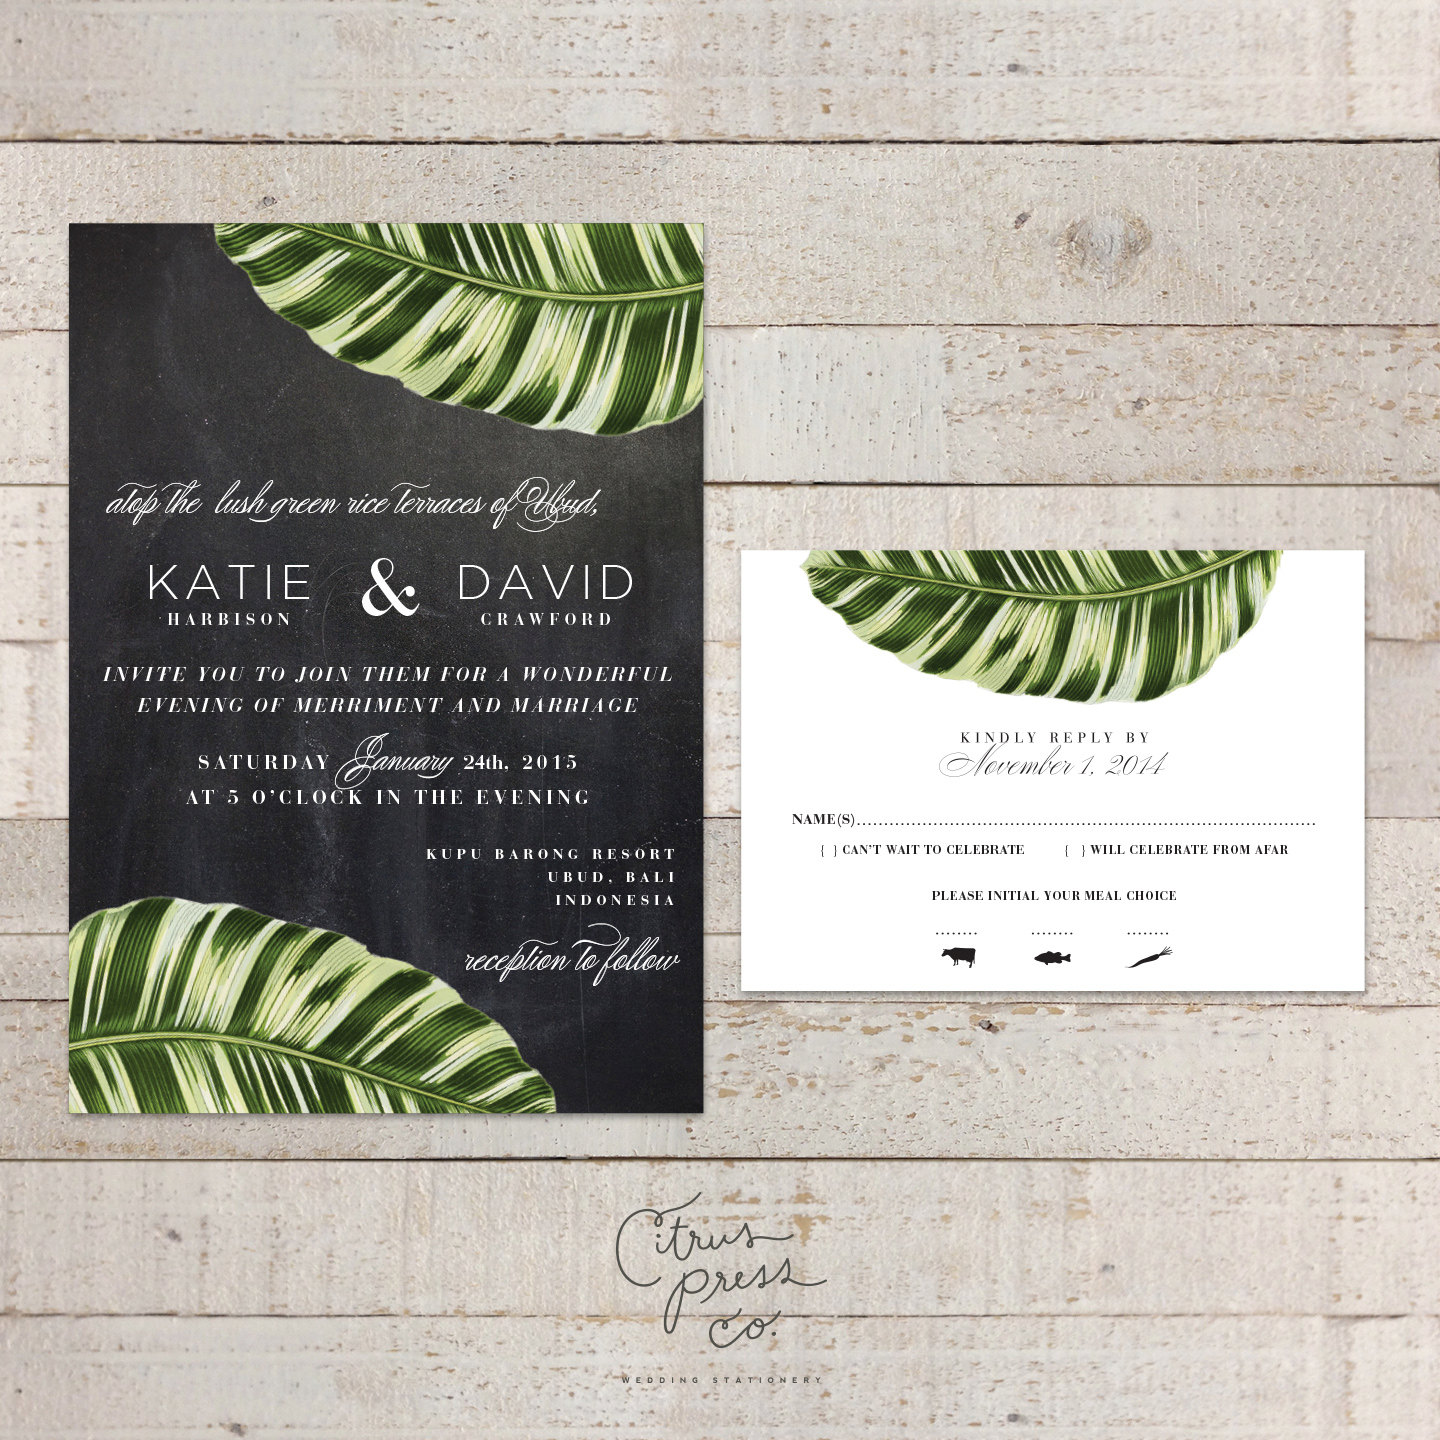 Destination Wedding Quotes For Invitations: Botanical Palm Leaf Wedding Invitation Tropical Palm Banana